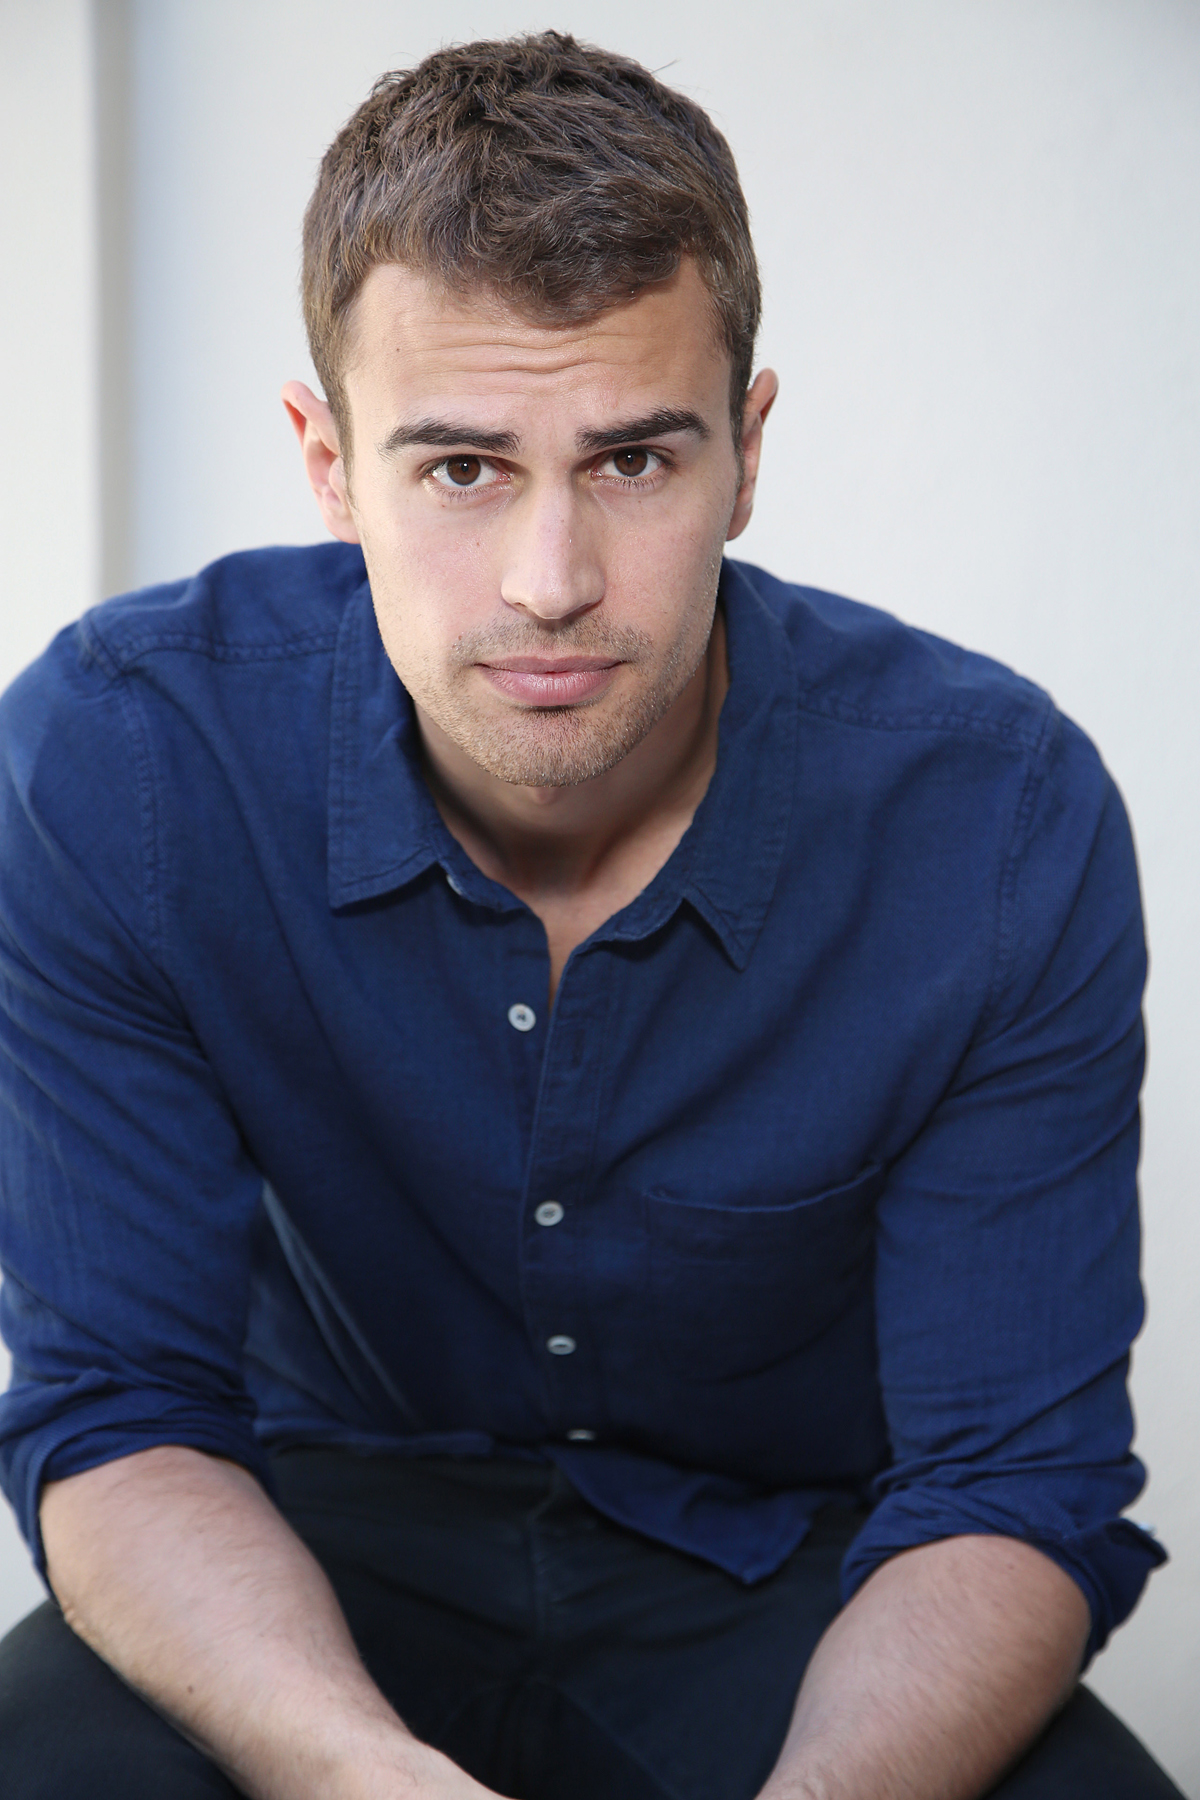 u0026quot;Insurgentu0026quot; actor Theo James is photographed in Beverly Hills on March 6